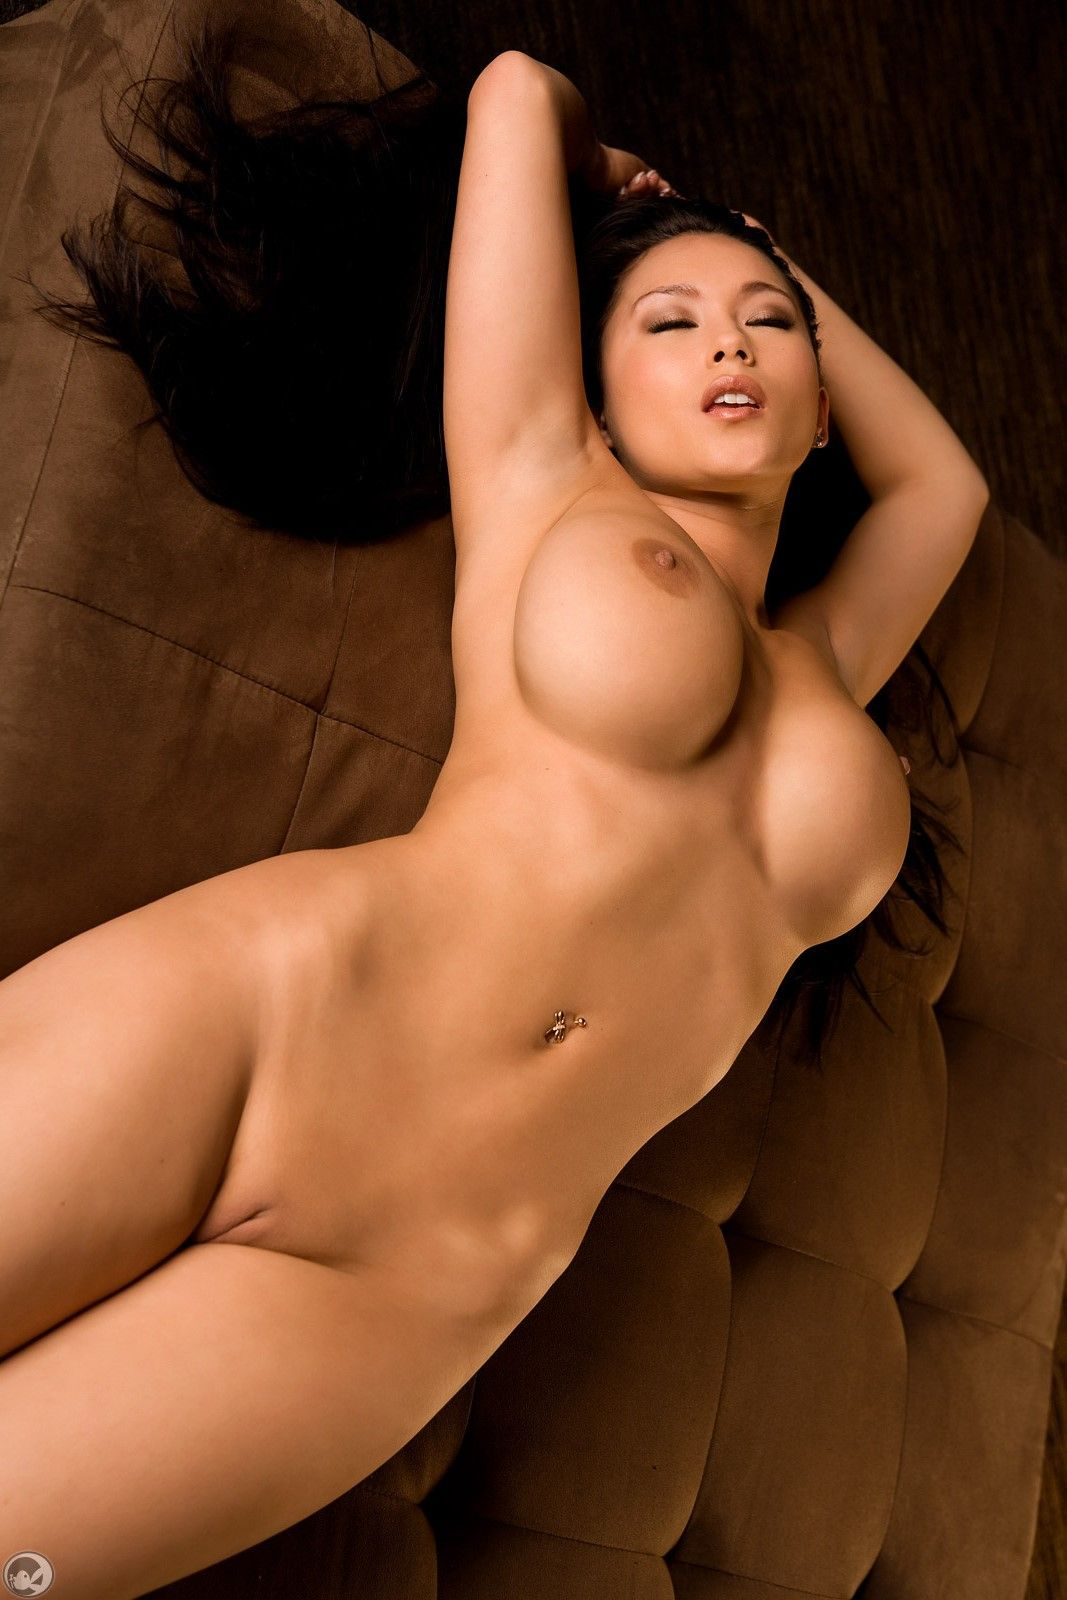 SHAVED, BUSTY PERFECT 10 ATHLETIC BODY OF PLAYBOY MODEL ...